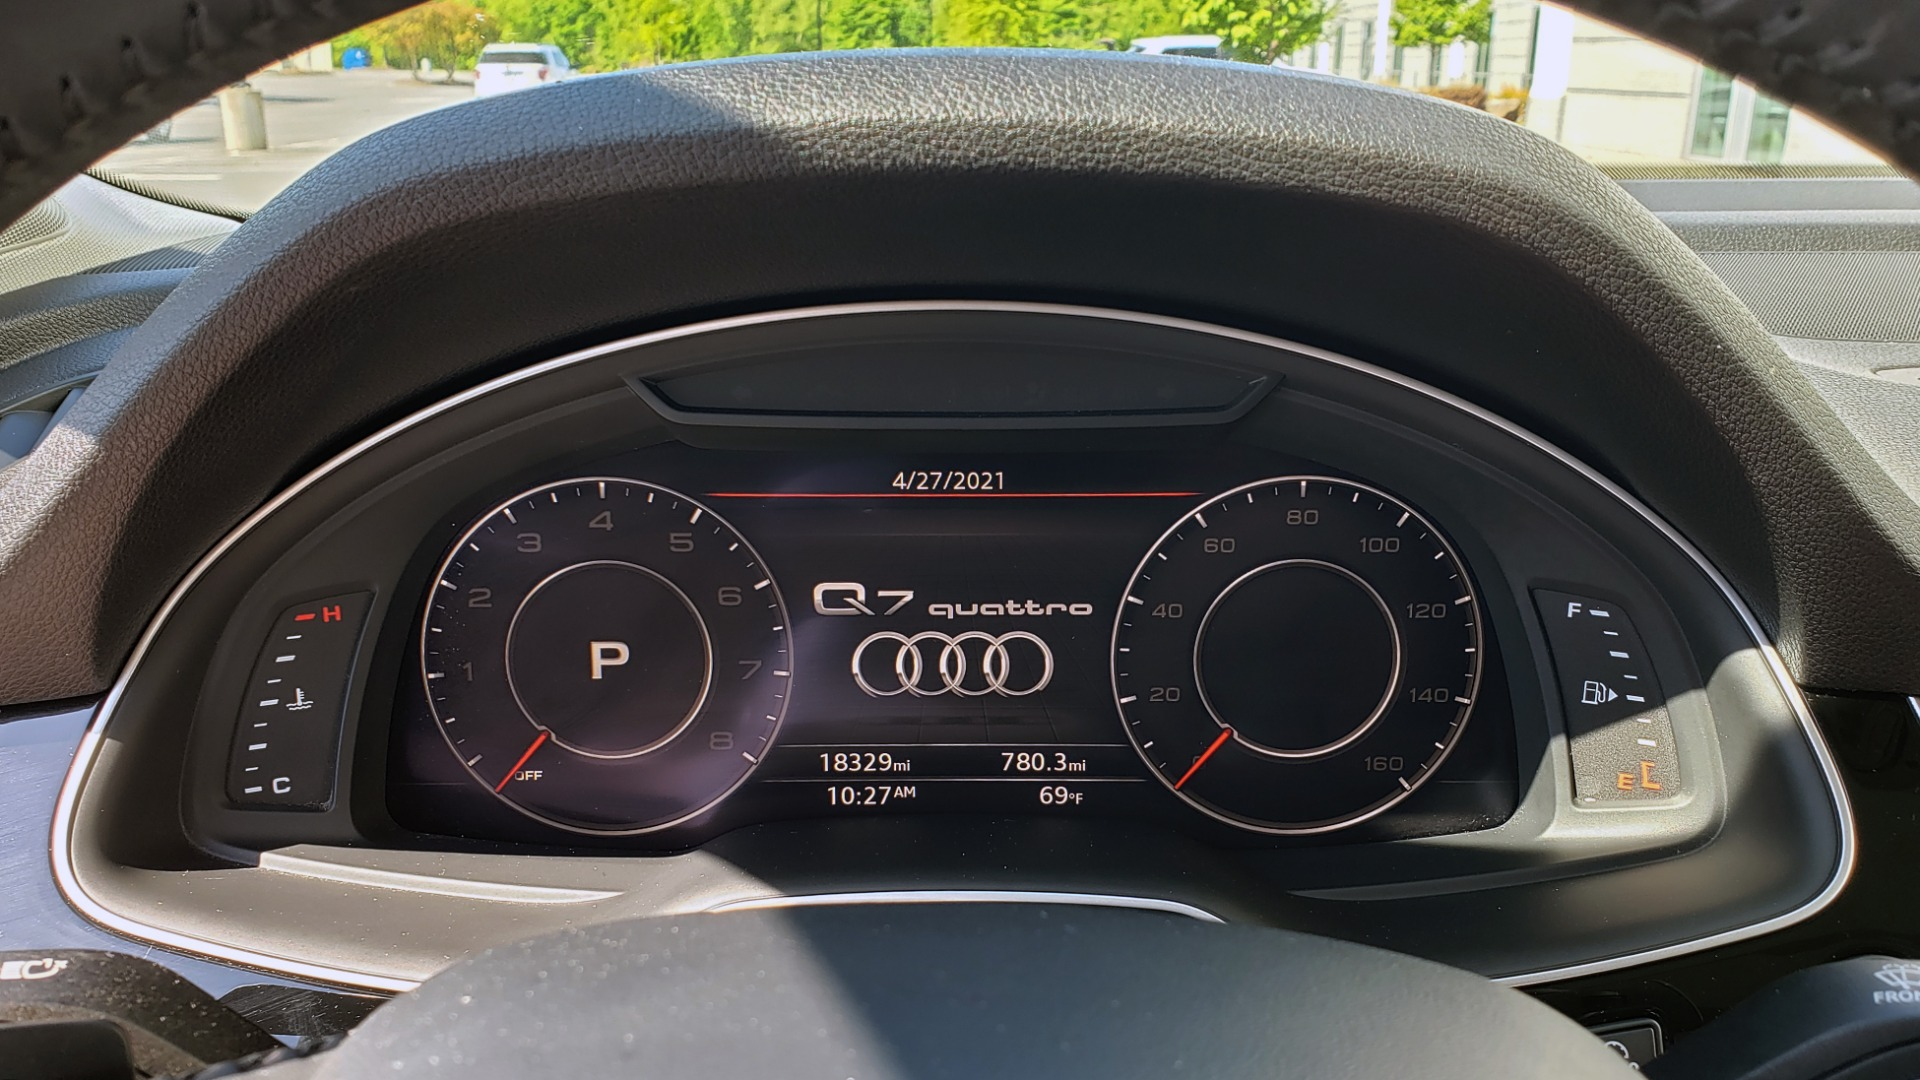 Used 2018 Audi Q7 PREMIUM PLUS TIPTRONIC / NAV / SUNROOF / VISION PKG / CLD WTHR / REARVIEW for sale $44,395 at Formula Imports in Charlotte NC 28227 12